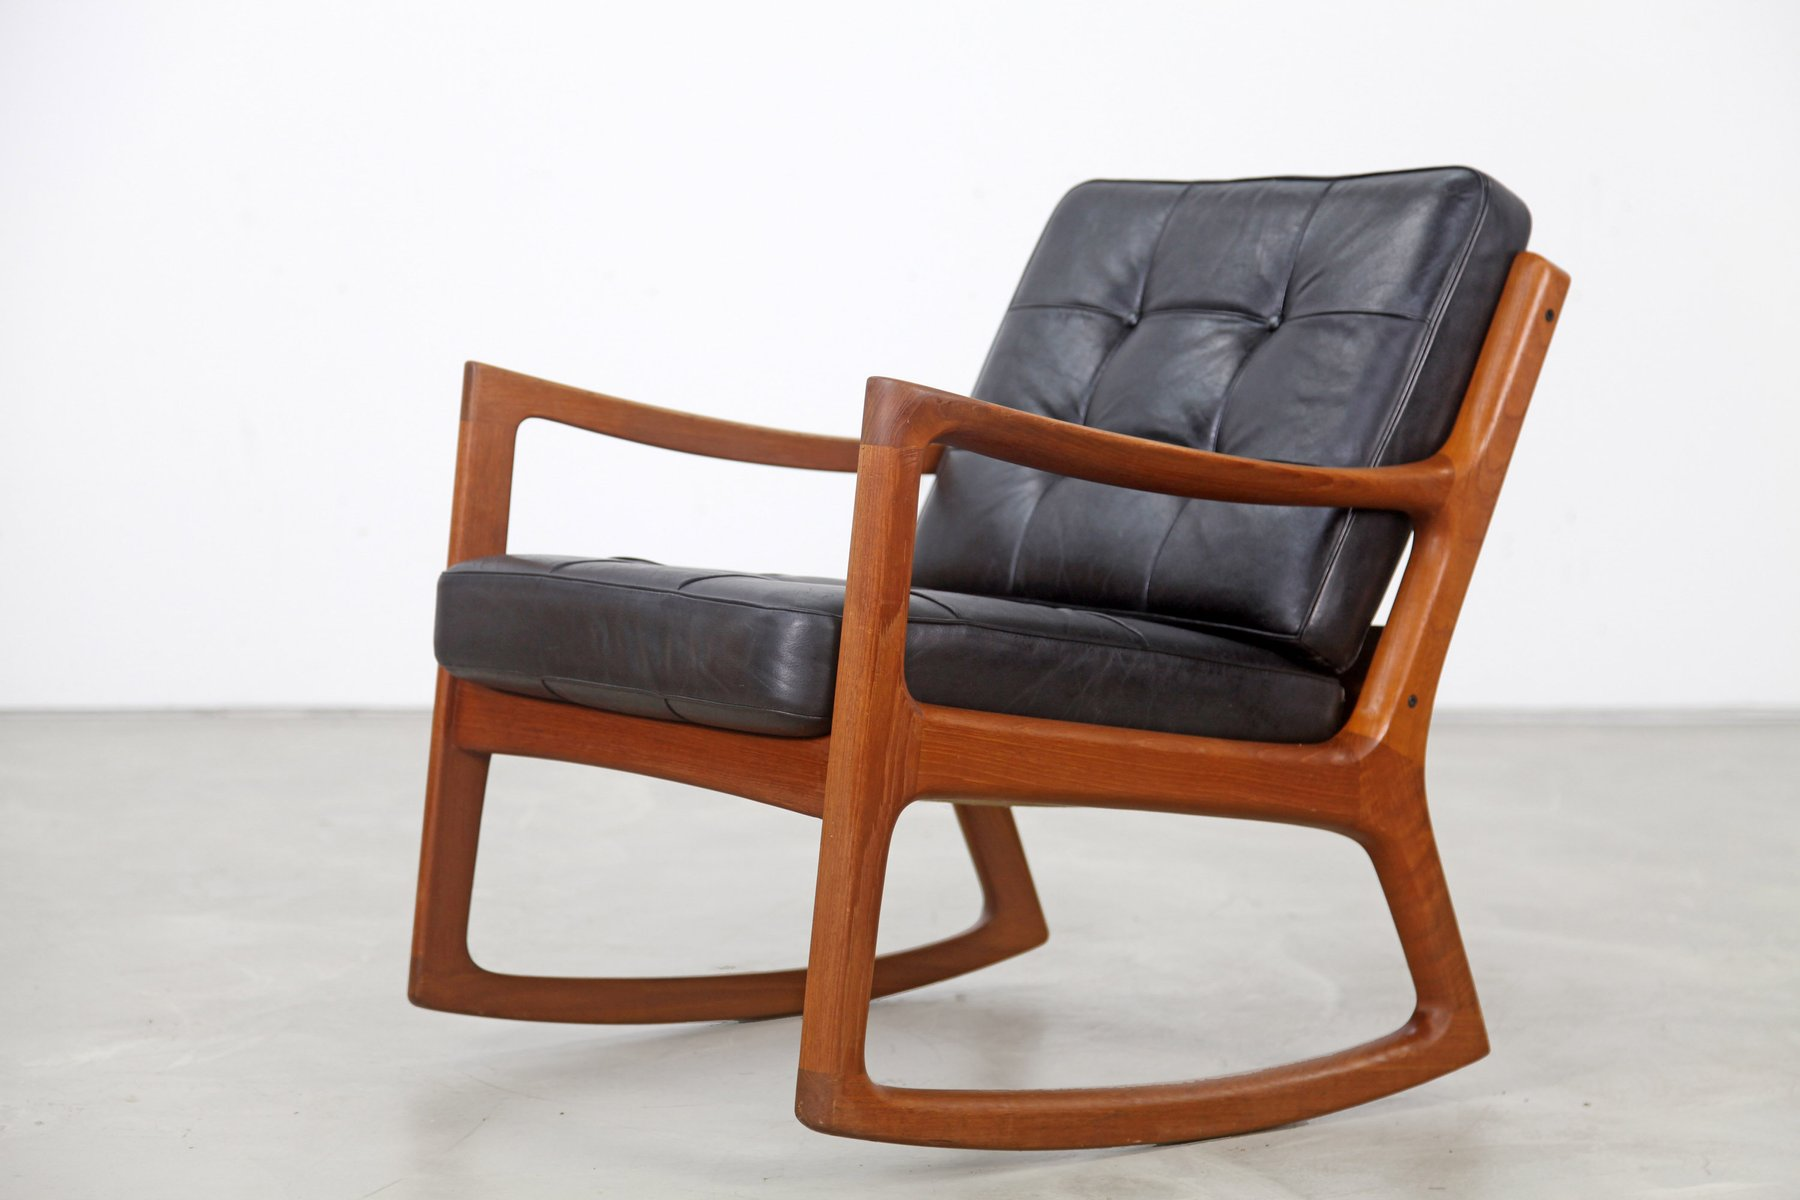 Rocking Chairs by Ole Wanscher online at Pamono